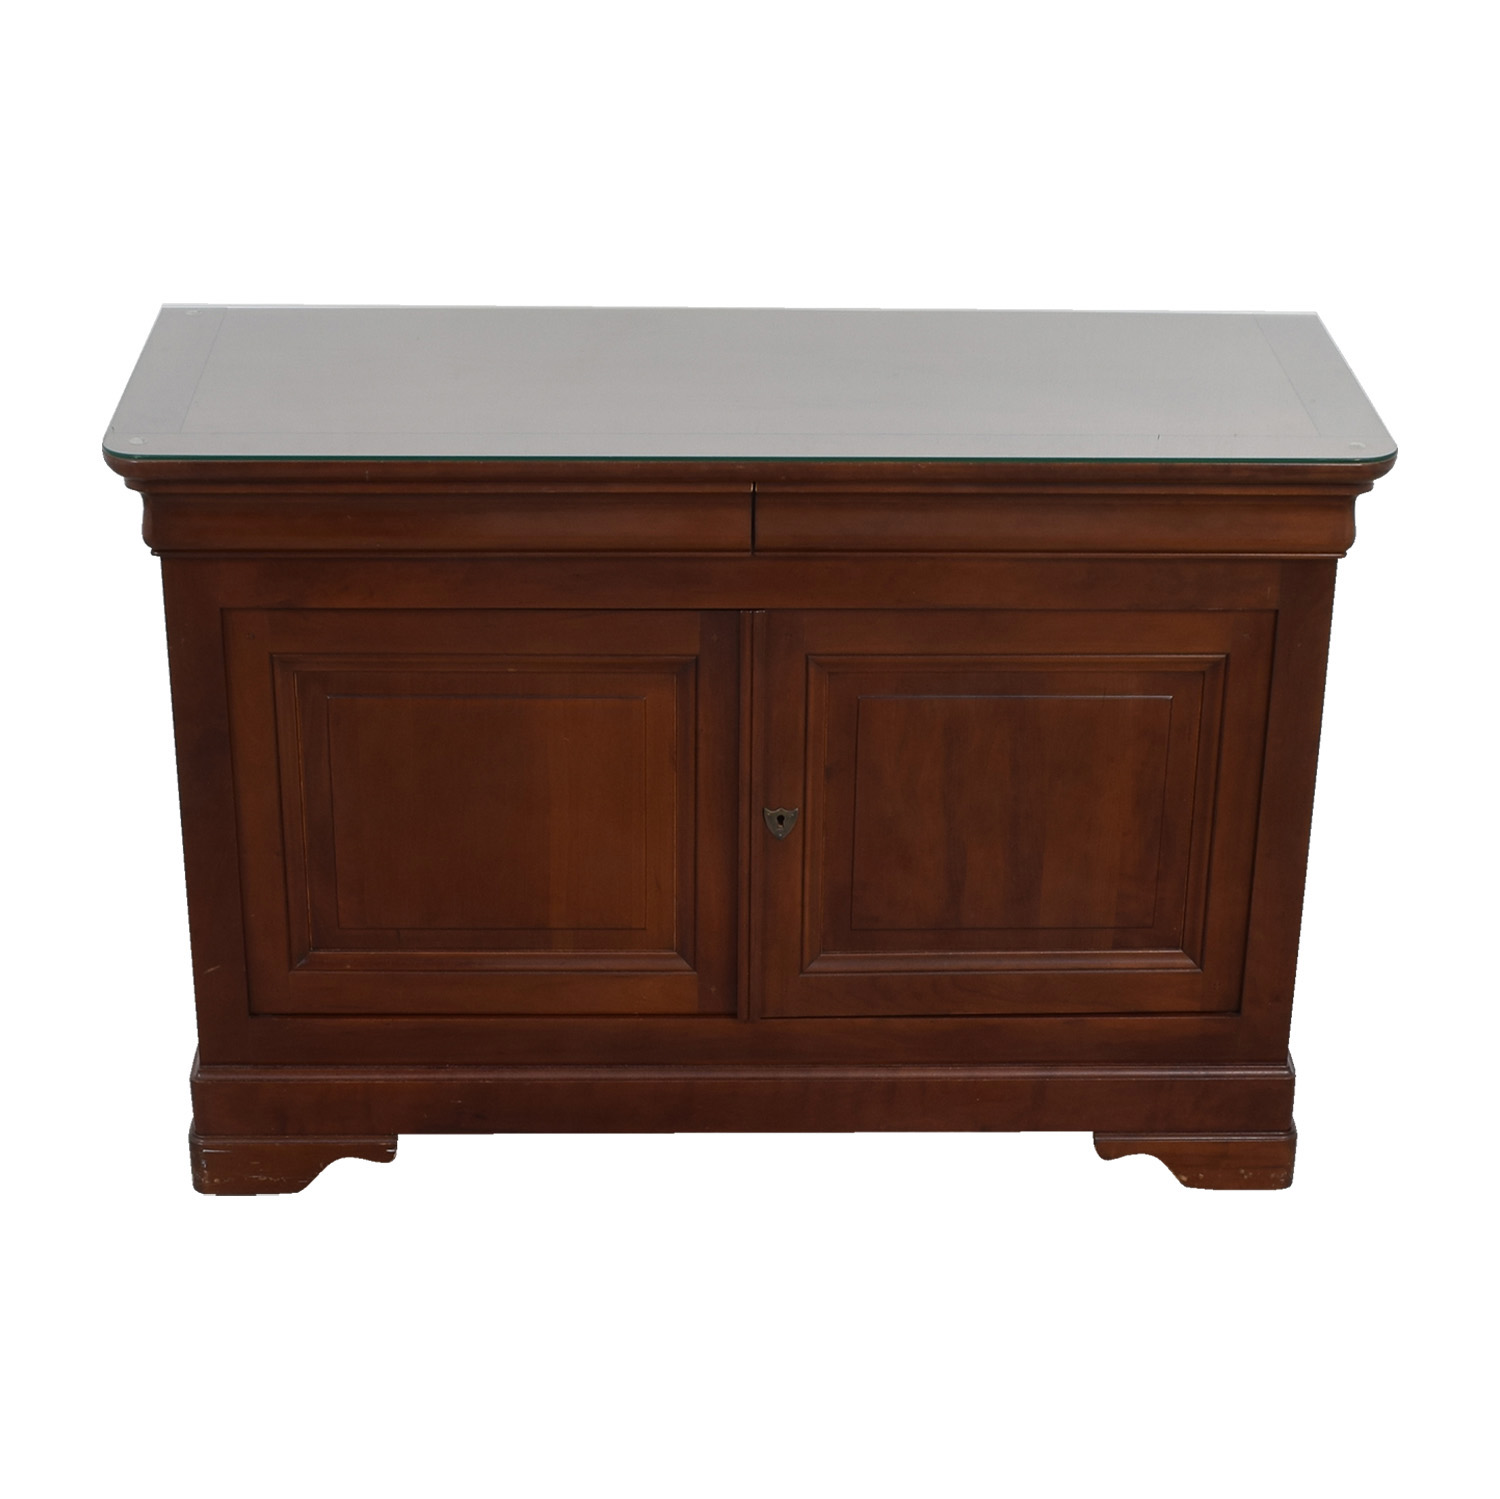 sale from sideboard at rosewood pamono table jun for model omann